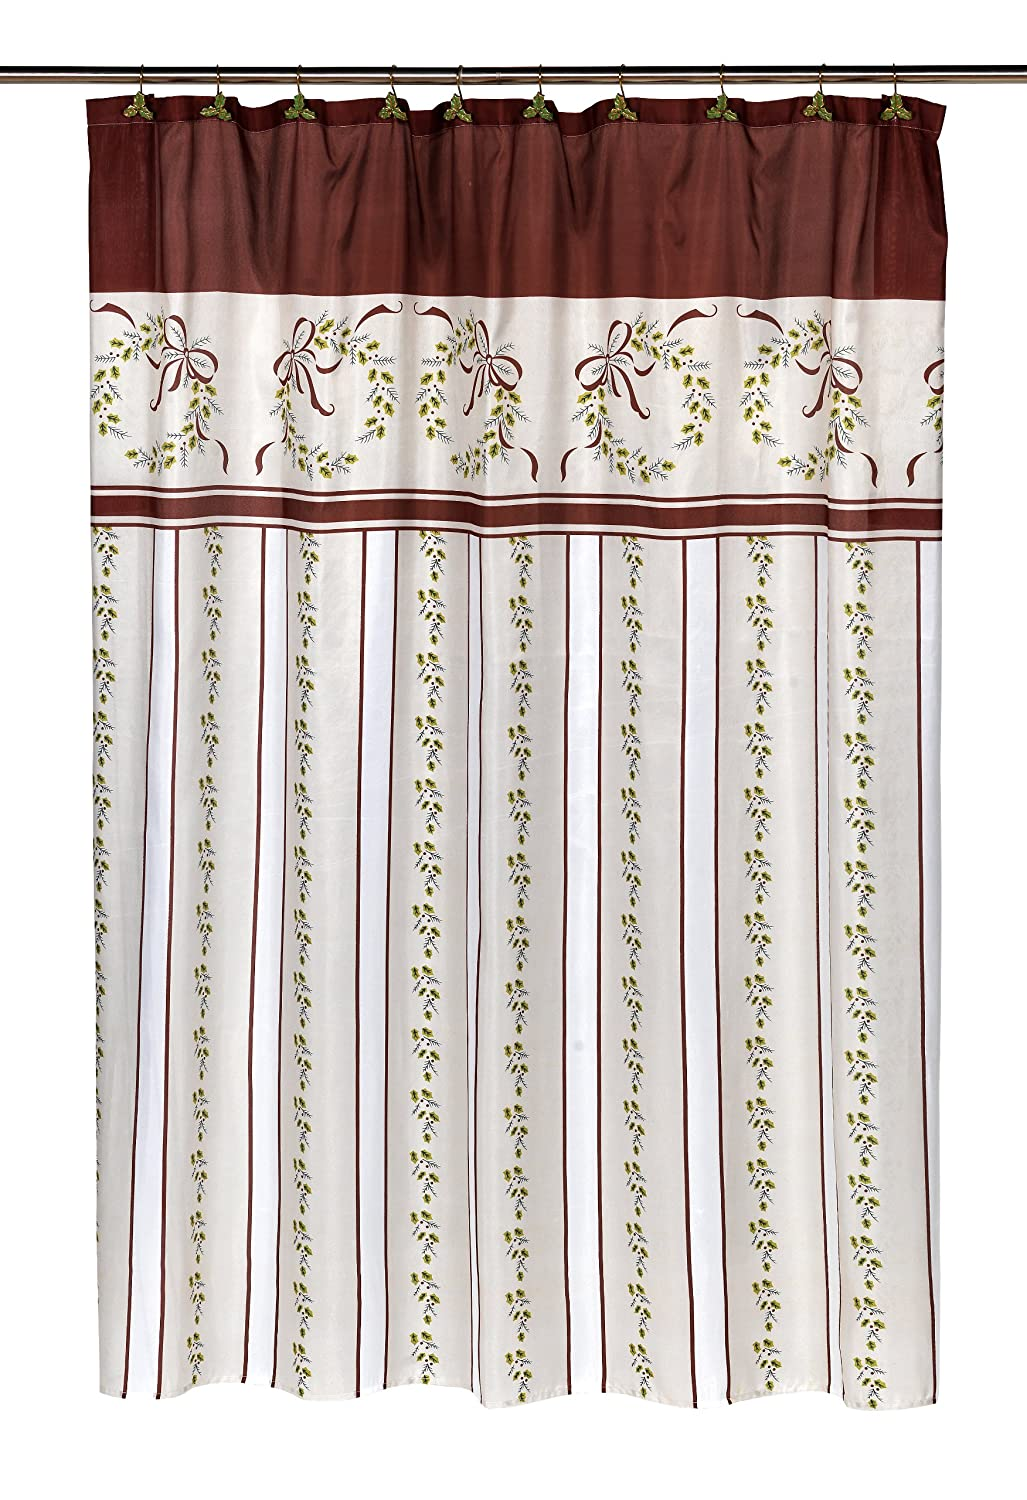 Carnation Home Fashions Fabric Shower Curtain Carnation Home Fashions quot